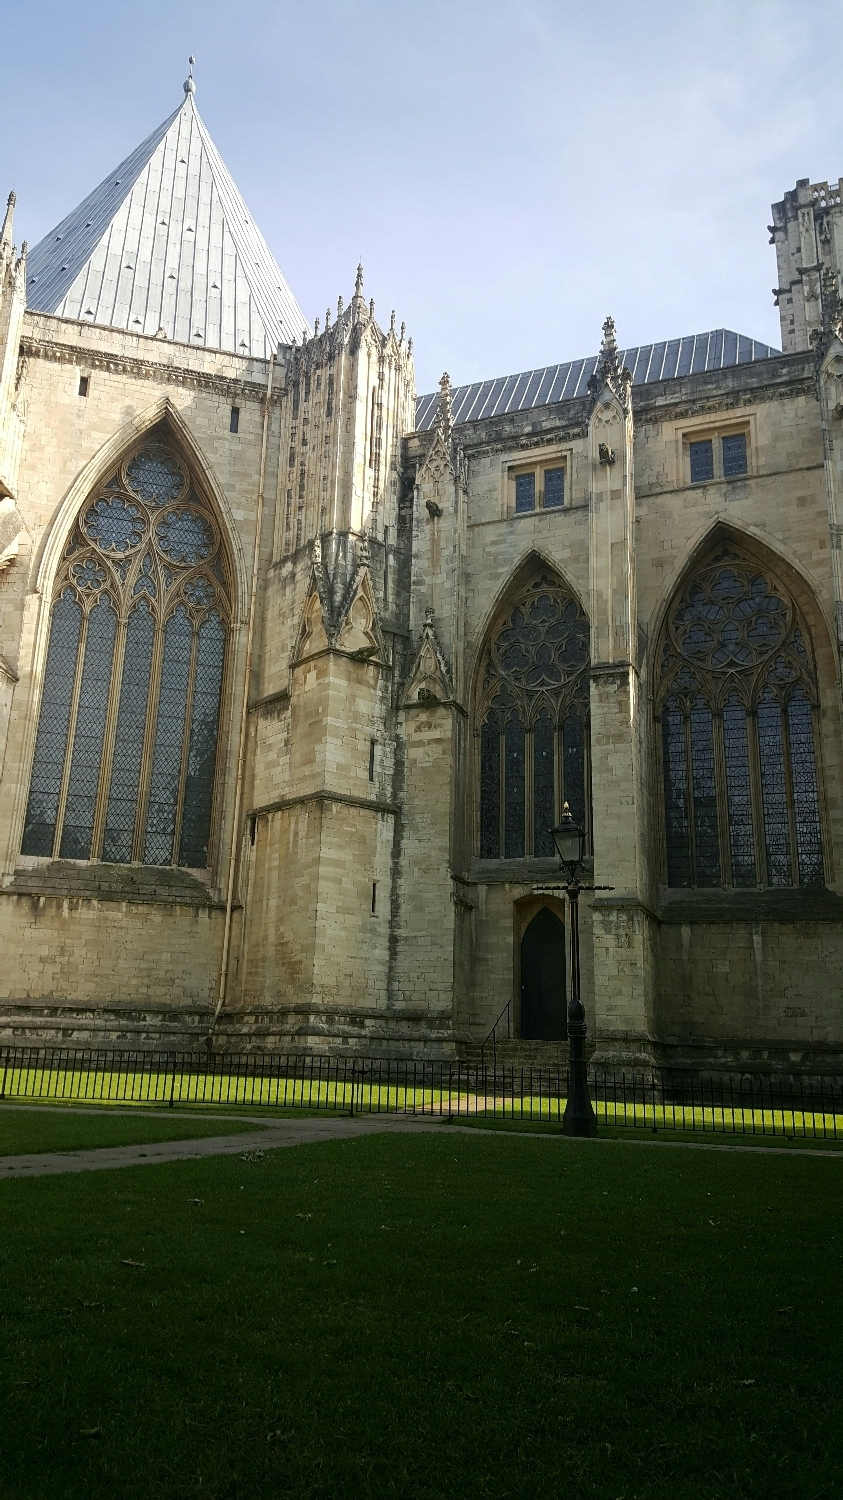 View from the lawn behind the York Minster